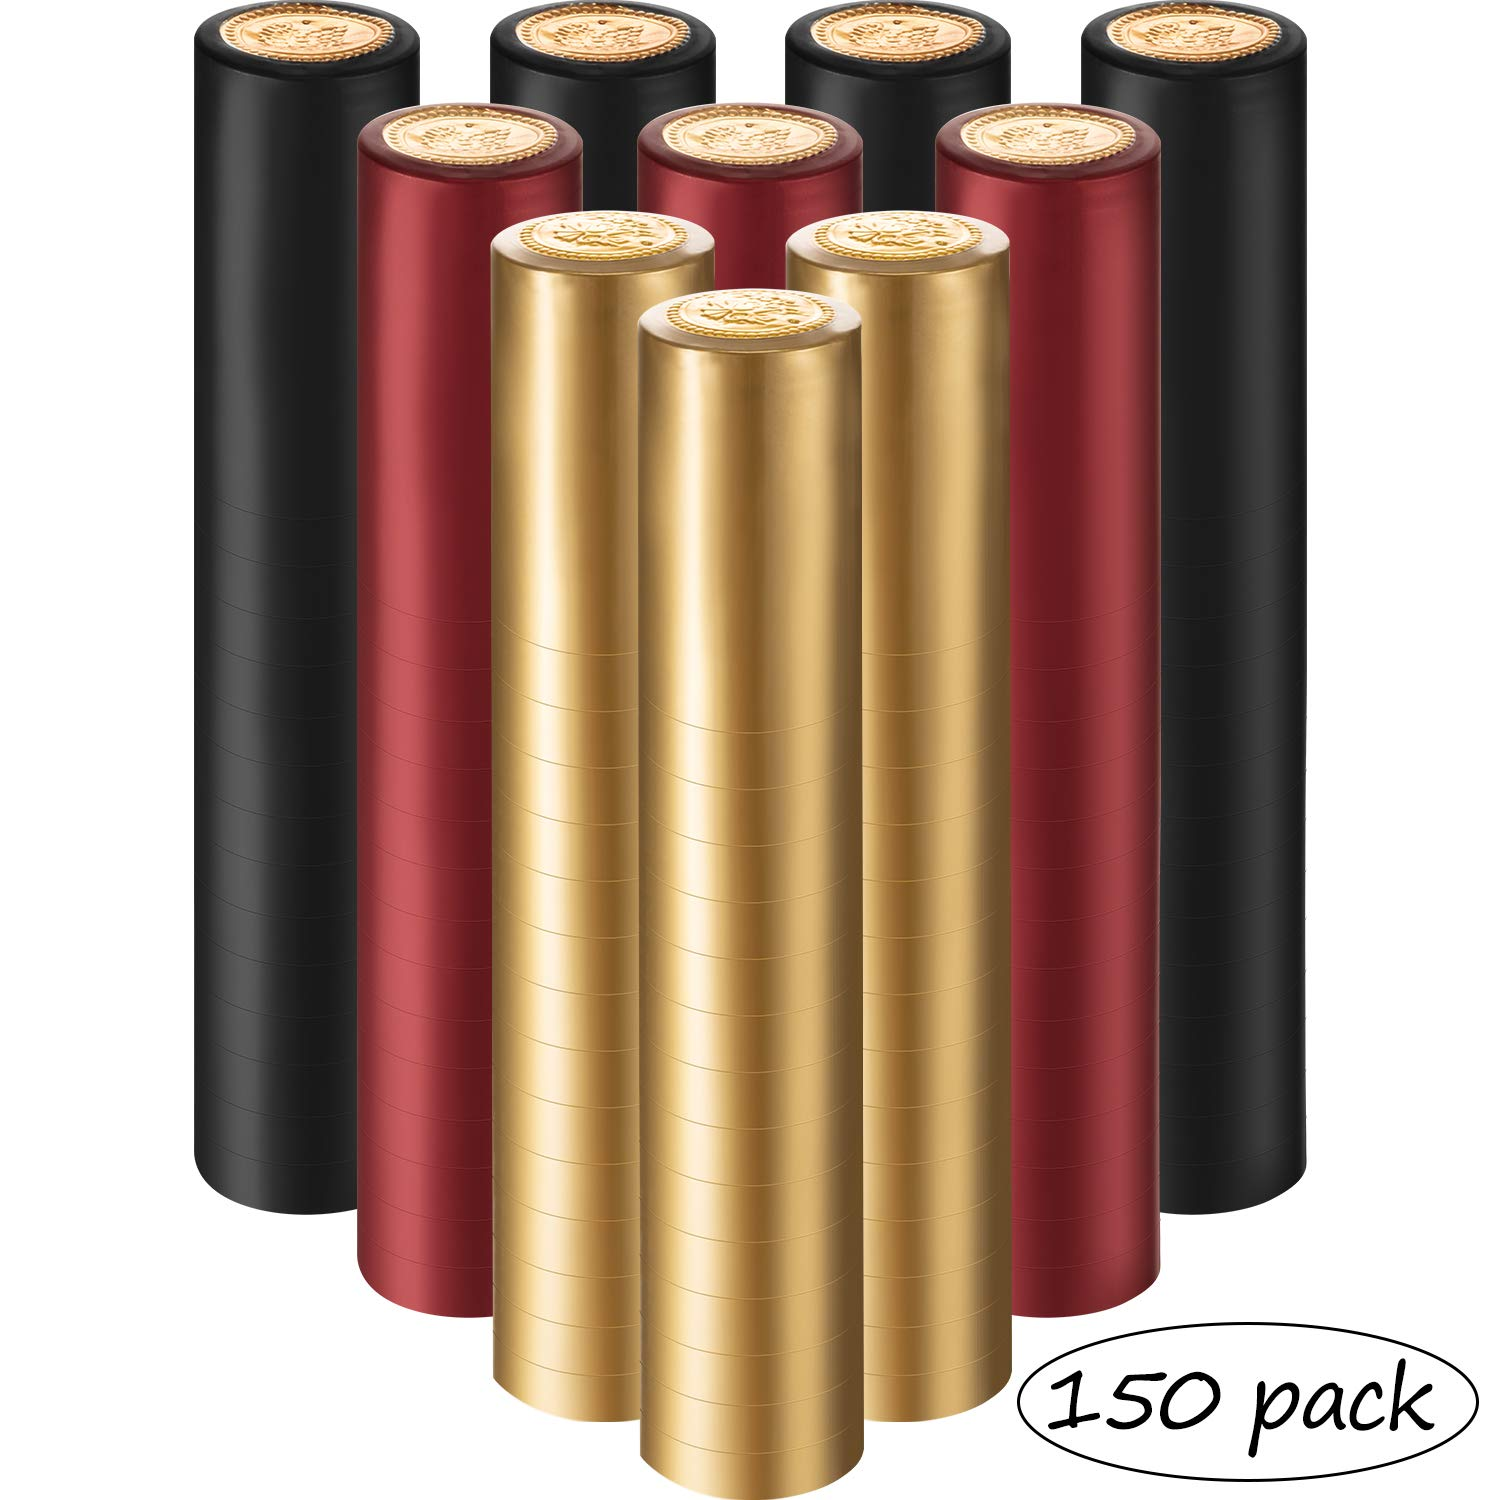 PVC Heat Shrink Capsules Wine Shrink Wrap Wine Bottle Capsules for Wine Cellars and Home Use, 3 Colors (150) by Zonon